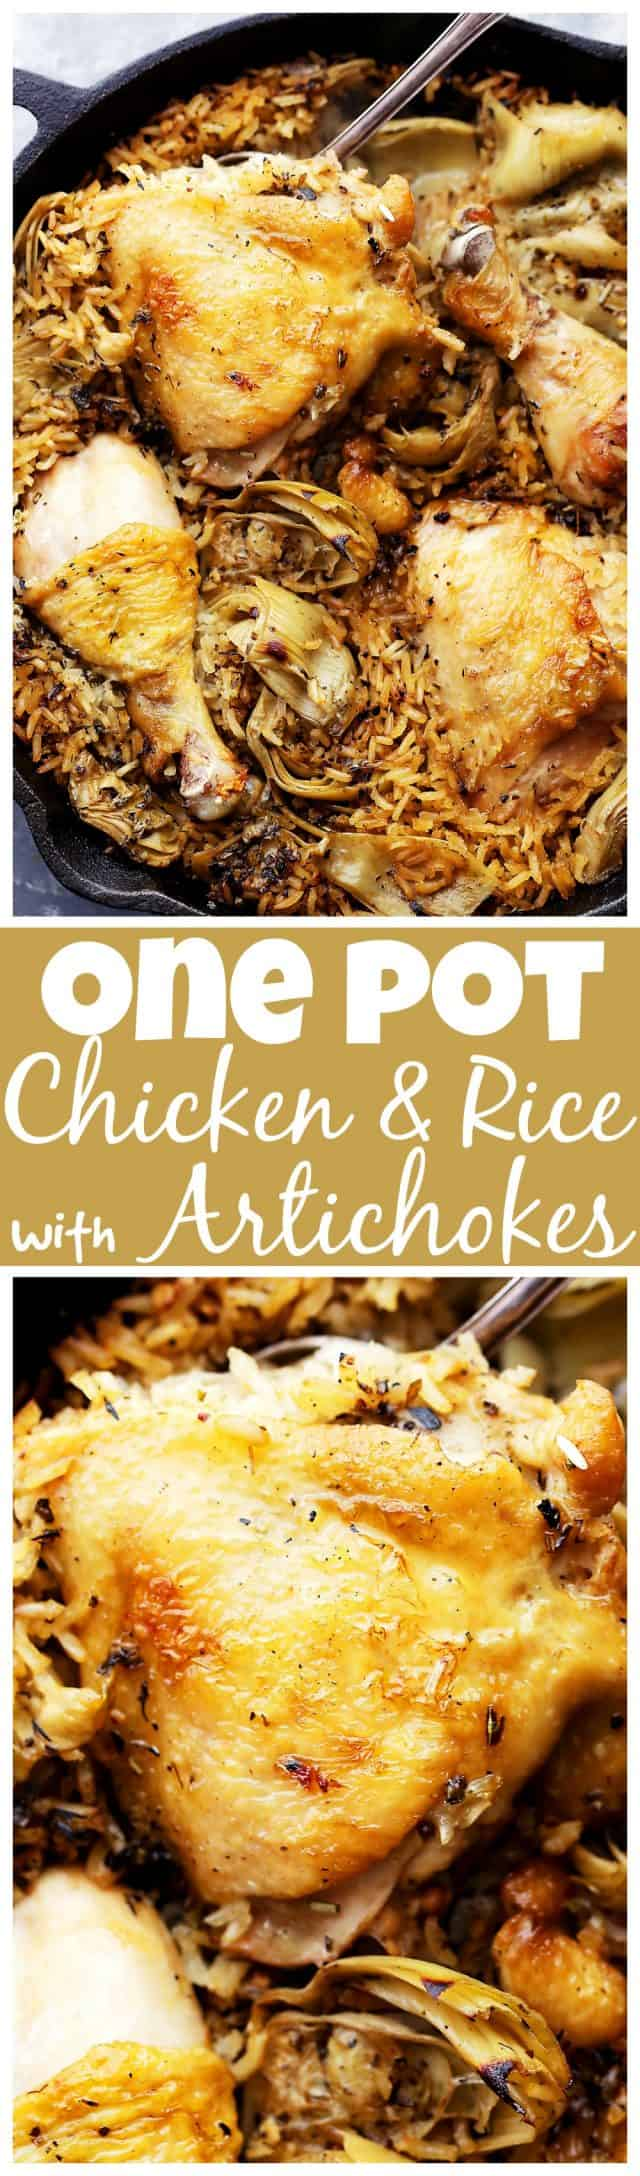 One Pot Chicken and Rice with Artichokes - Classic, delicious comfort food with chicken and rice made in just one pot! It's quick and easy,and the artichokes add so much flavor!